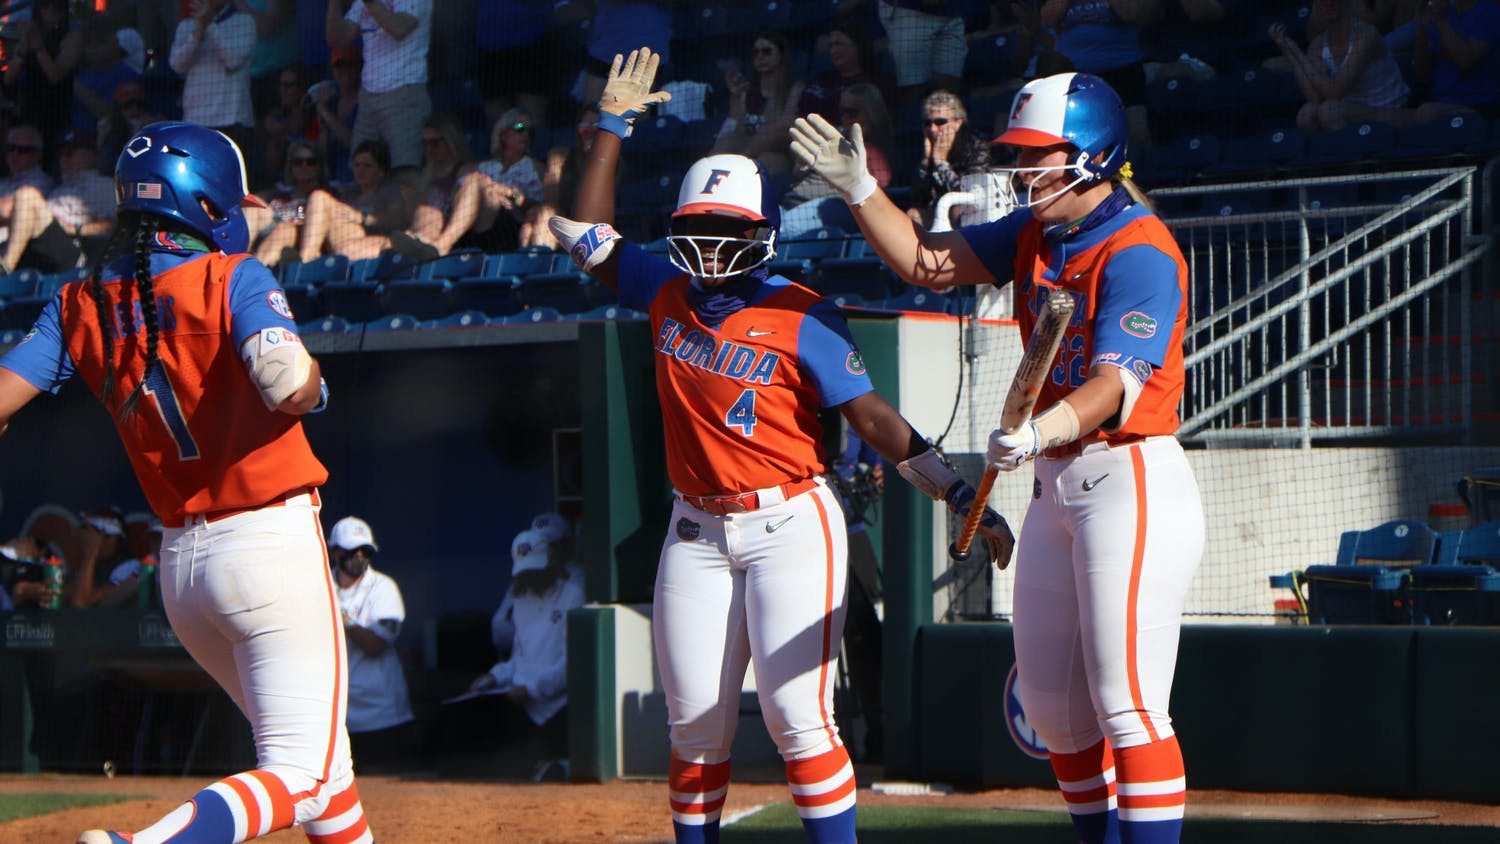 Charla Echols, Hannah Adams and Kendyl Lindaman celebrate at home plate. The Gators handled the Aggies 4-0 Saturday.